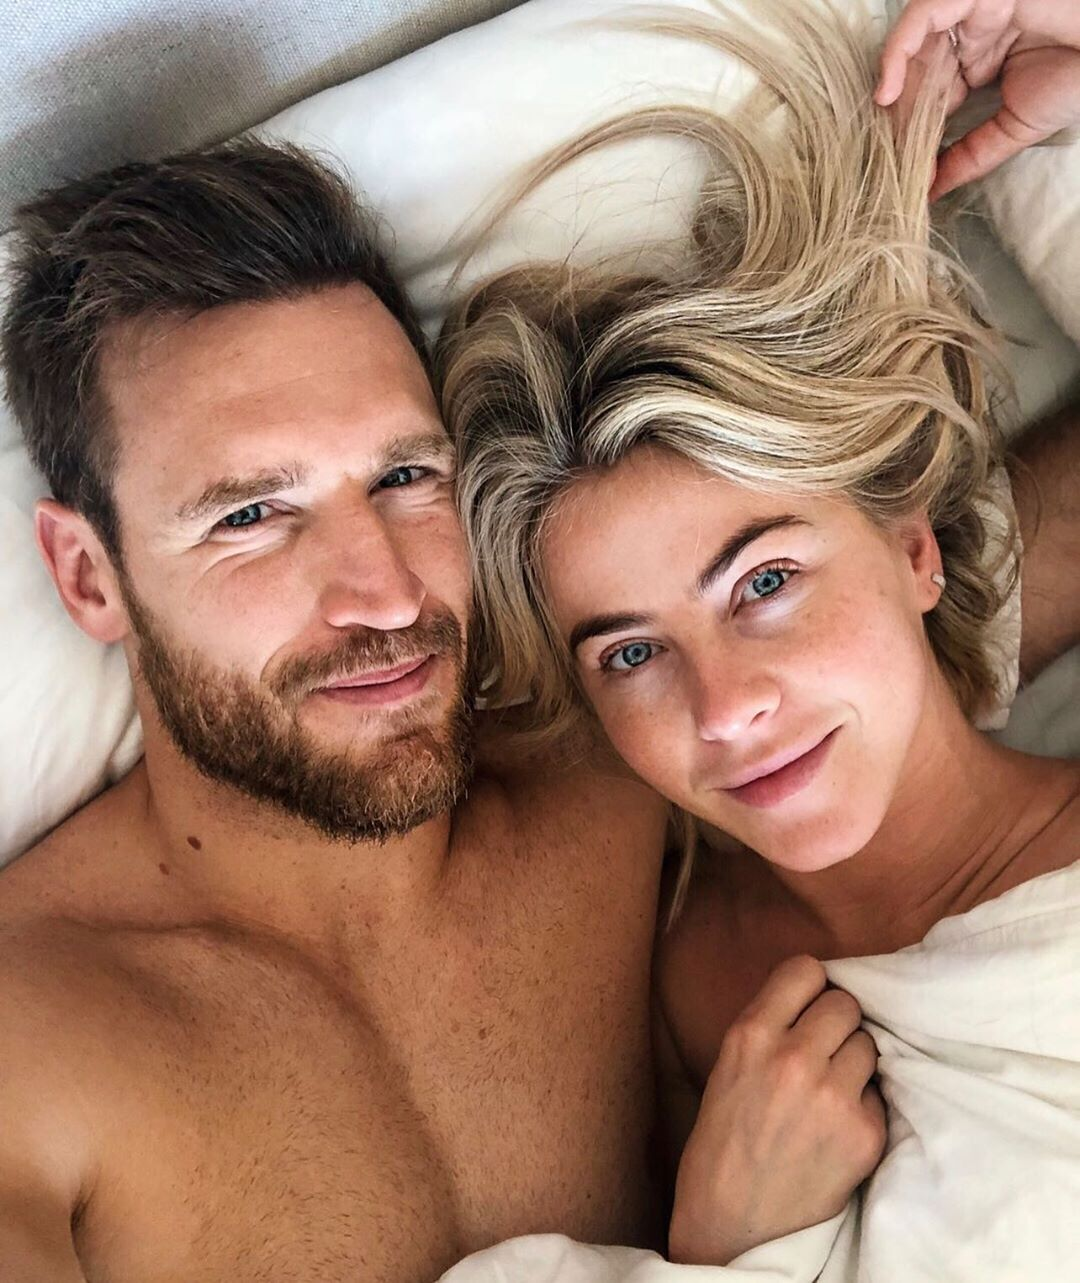 Brooks Laich Says Julianne Hough 'Really Enjoys It' When He Sucks on Her Toes: 'We Play Around'